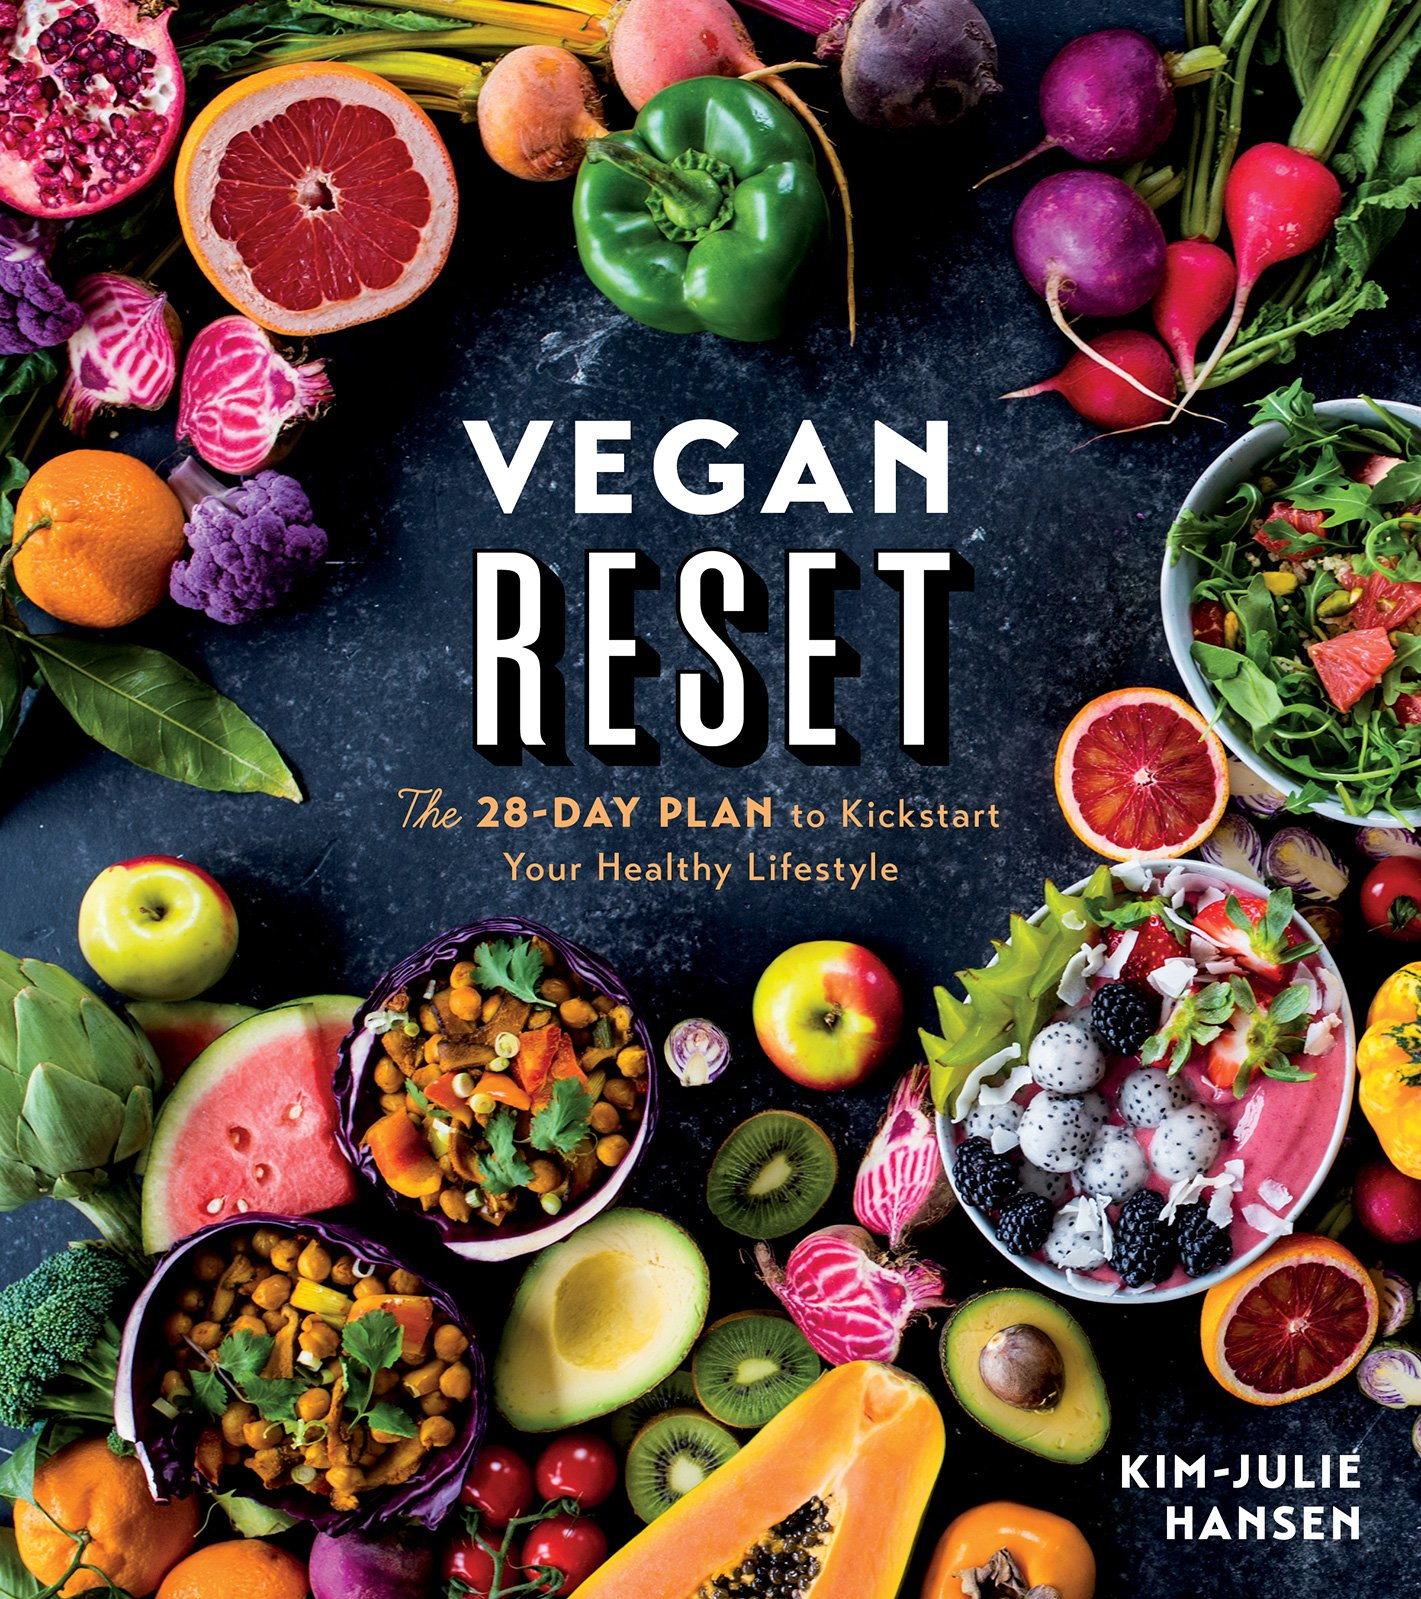 Image OfVegan Reset: The 28-Day Plan To Kickstart Your Healthy Lifestyle